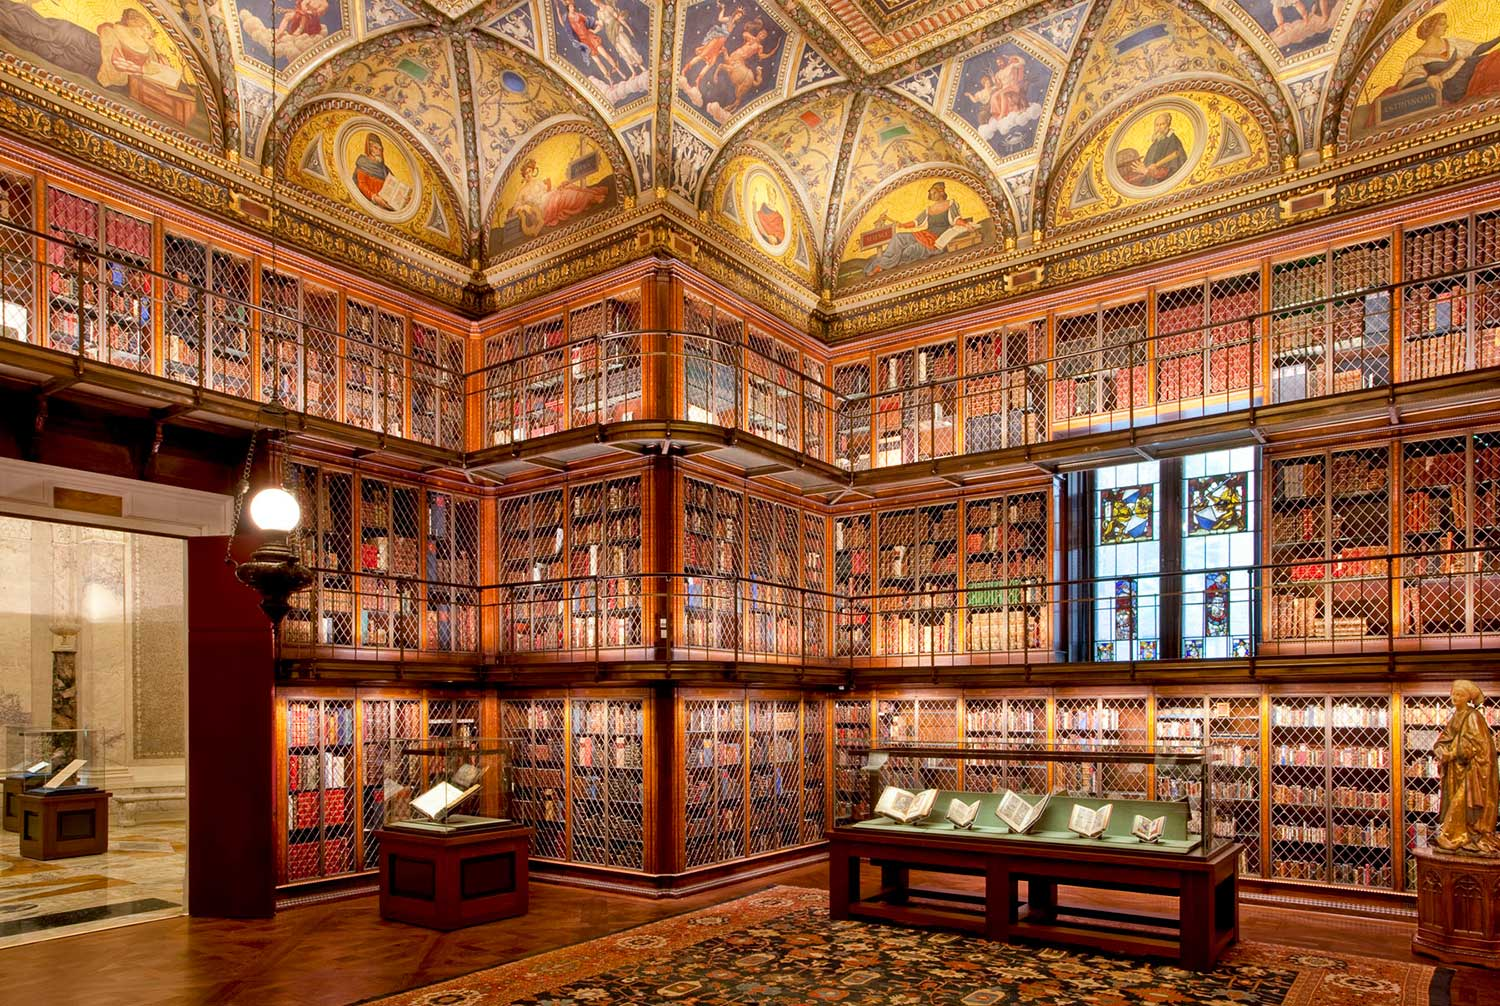 4-pierpont-morgan-s-library_south-east-view